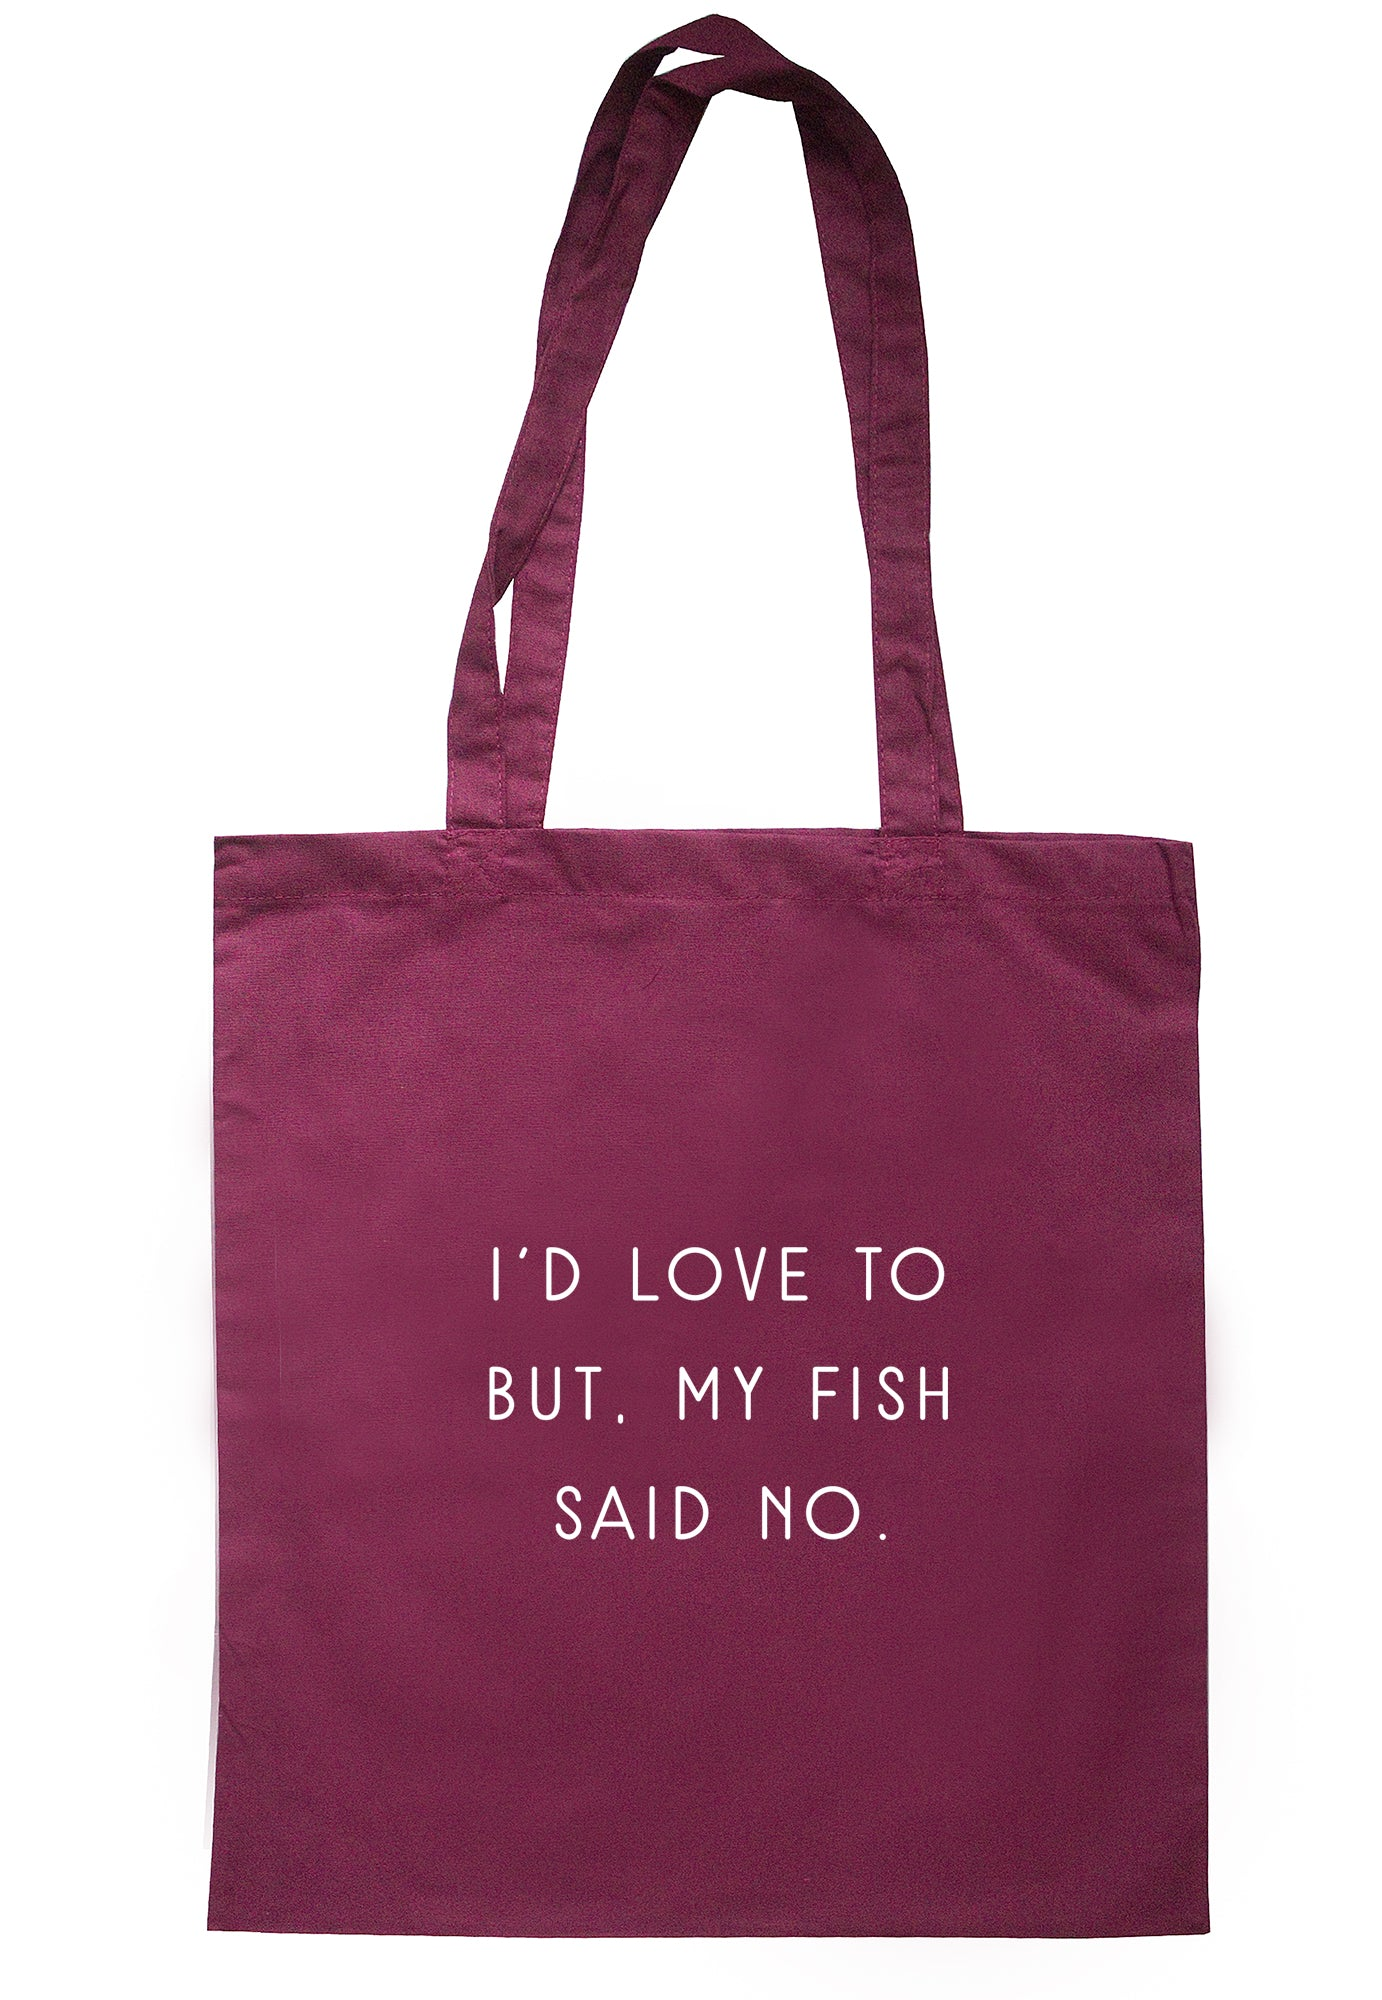 I'd Love To But, My Fish Said No Tote Bag S1073 - Illustrated Identity Ltd.